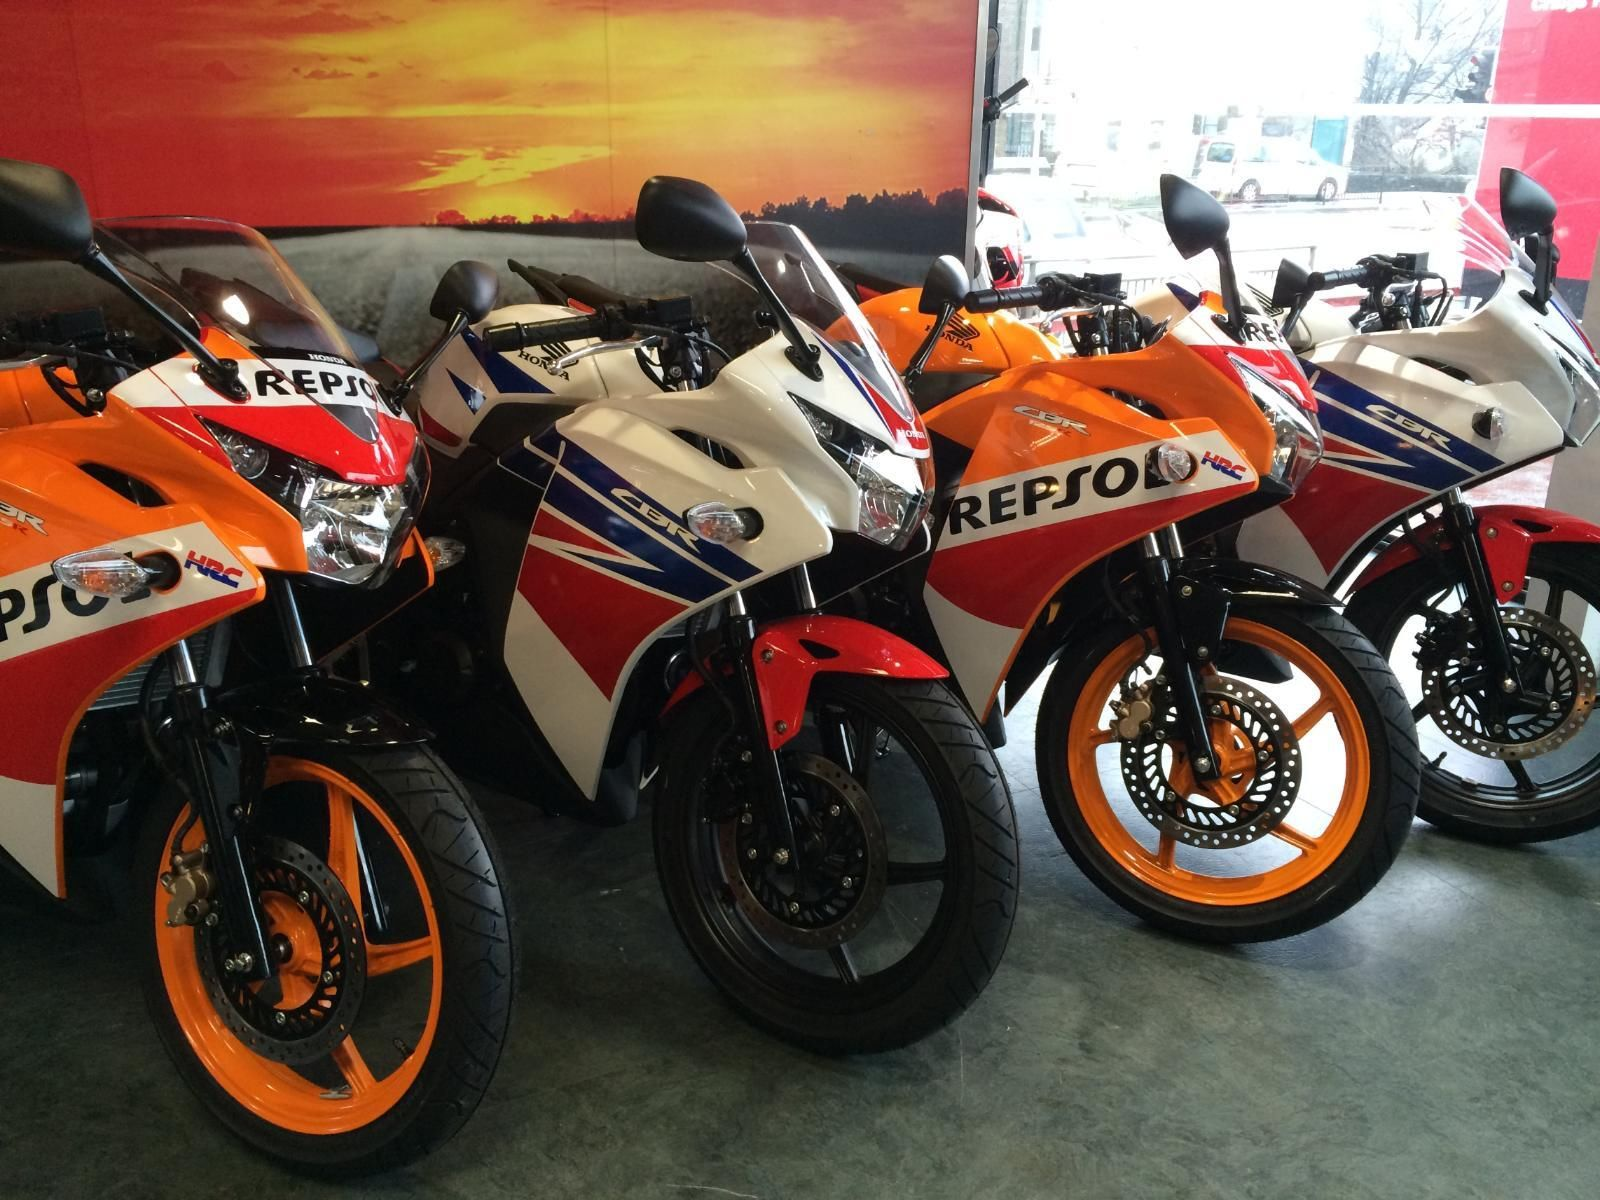 honda cbr 125 r repsol 2015 0 apr representative only 99. Black Bedroom Furniture Sets. Home Design Ideas